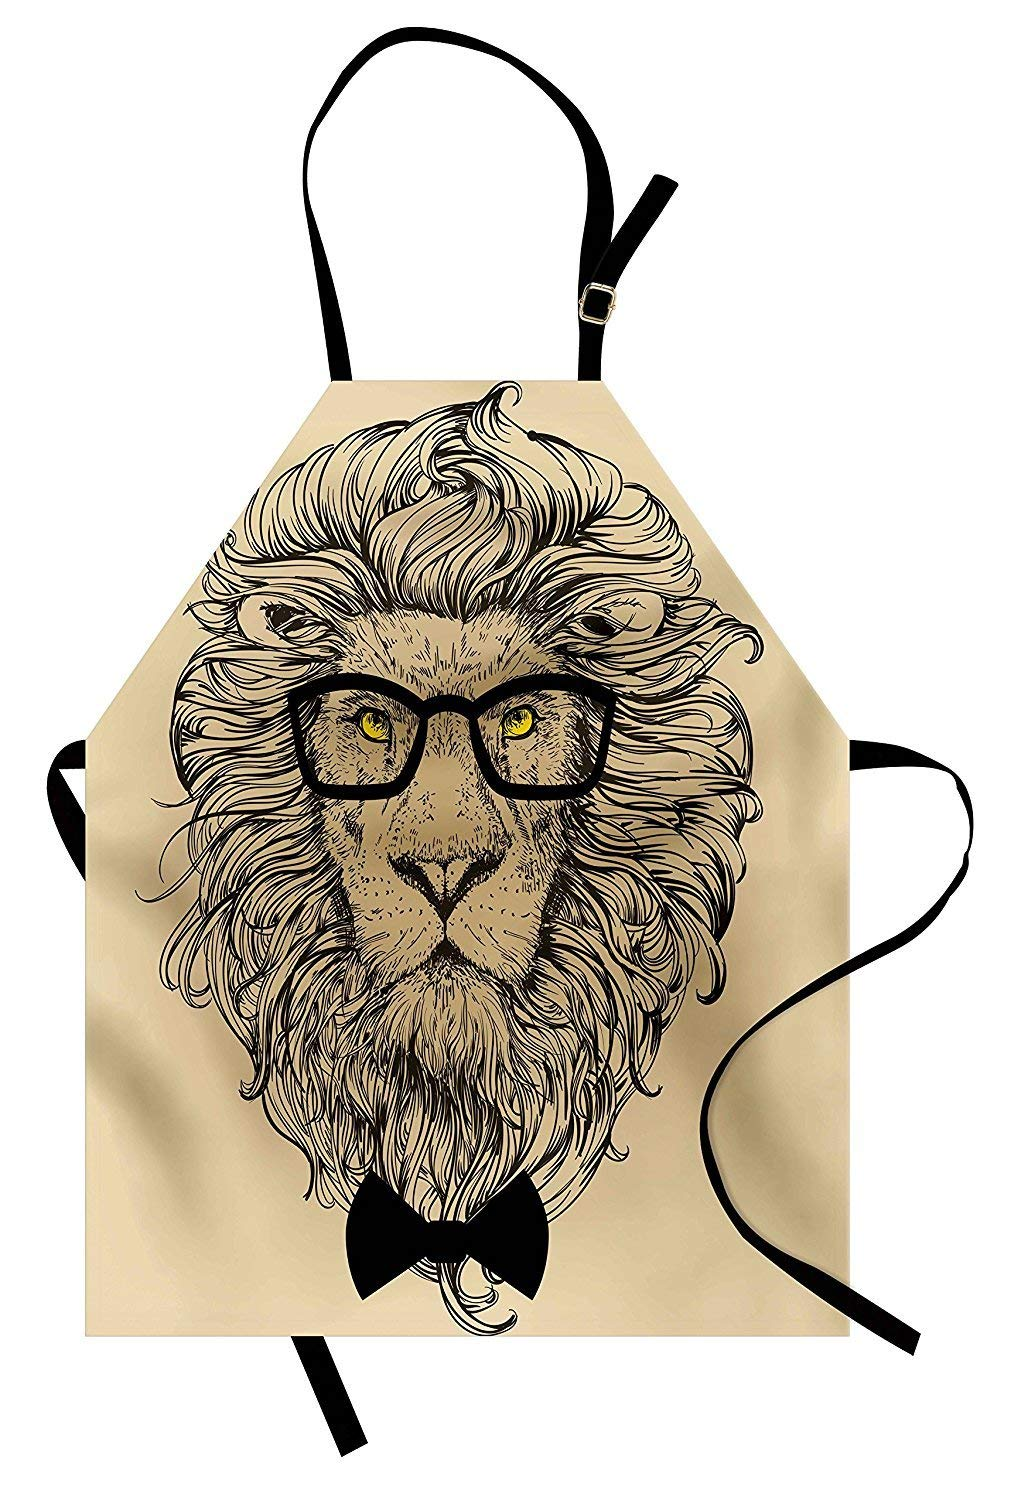 PMNADOU Indie Apron, Lion Character Portrait with Glasses and Bowtie Hipster Smart Cool Dandy, Unisex Kitchen Bib Apron with Adjustable Neck for Cooking Baking Gardening, Sand Brown Black Yellow